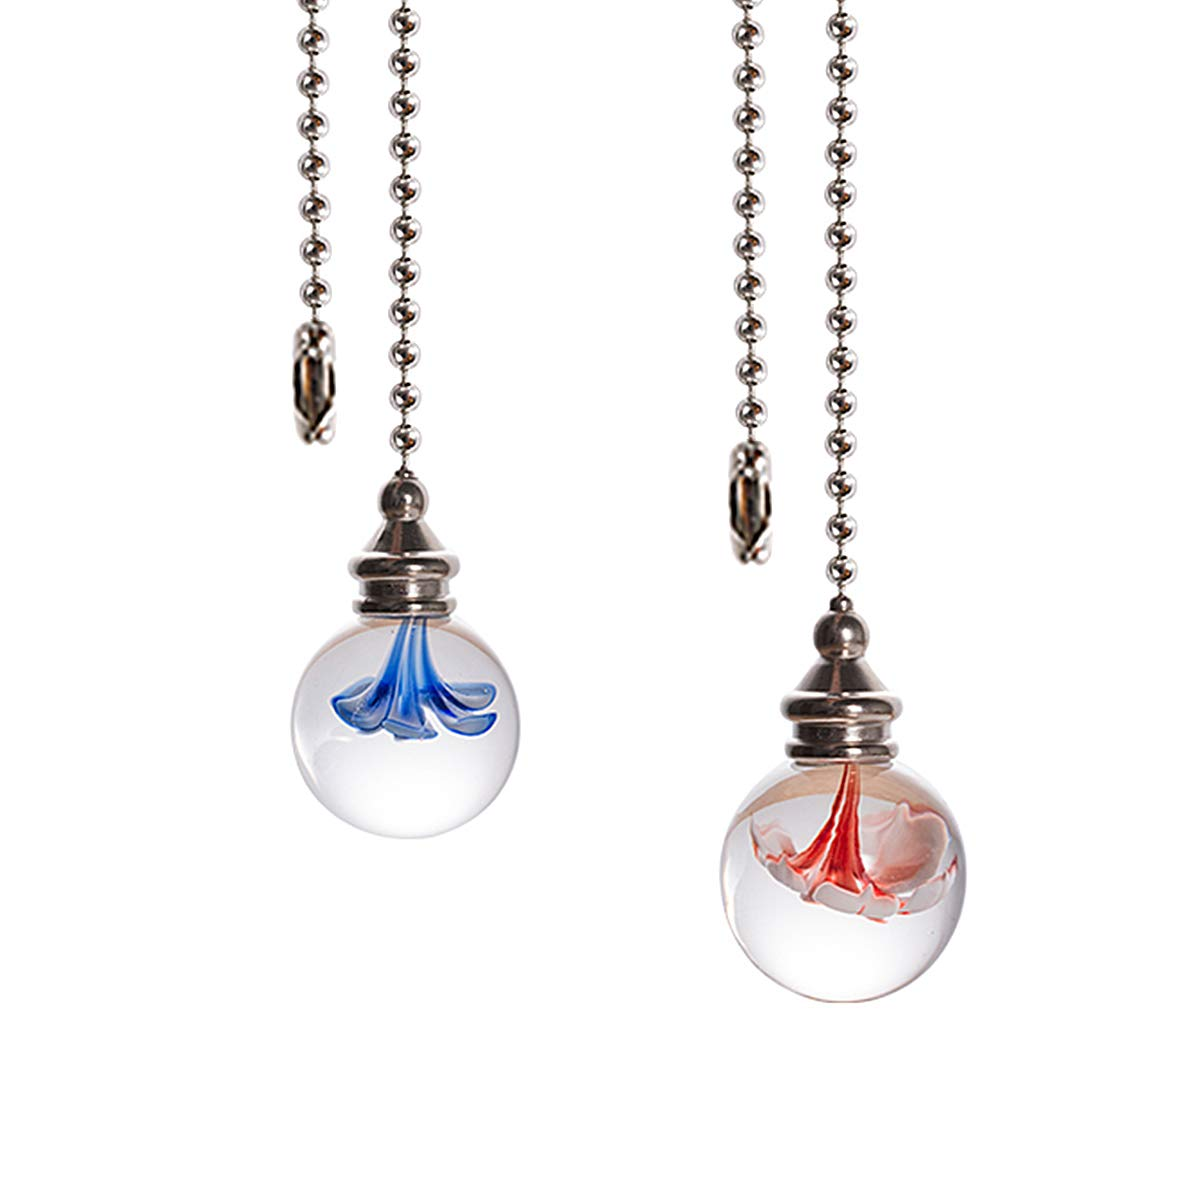 Crystal Ceiling Fan Pull Chains Hanging Flowers Pendants Prism Pack Of 2 Light Blue by LONGSHENG Pull Chains